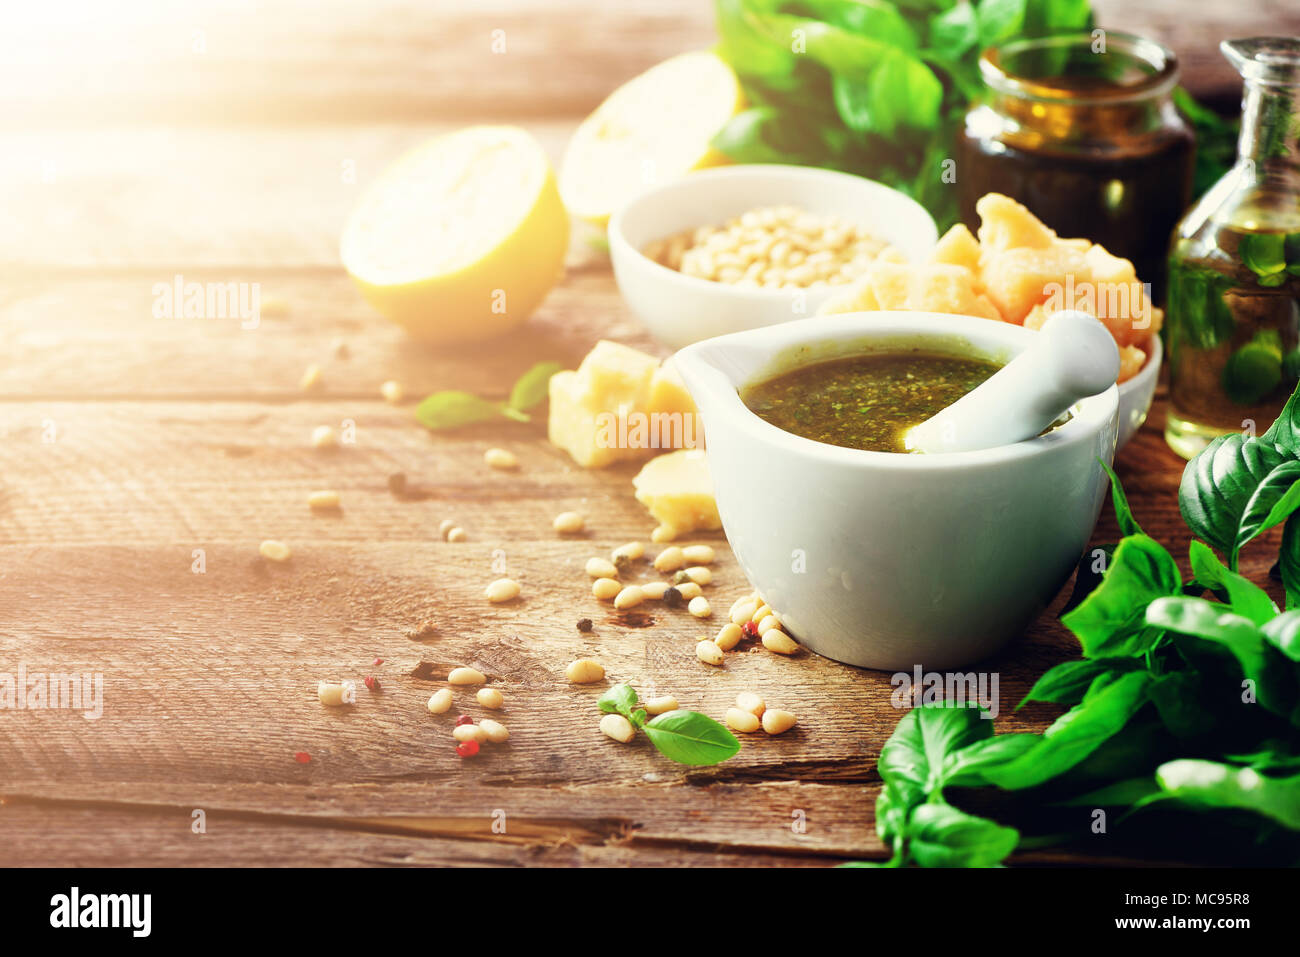 Ingredients for homemade pesto - basil, lemon, parmesan, pine nuts, garlic, olive oil and salt on rustic wooden background. Top view, flat lay, copysp Stock Photo